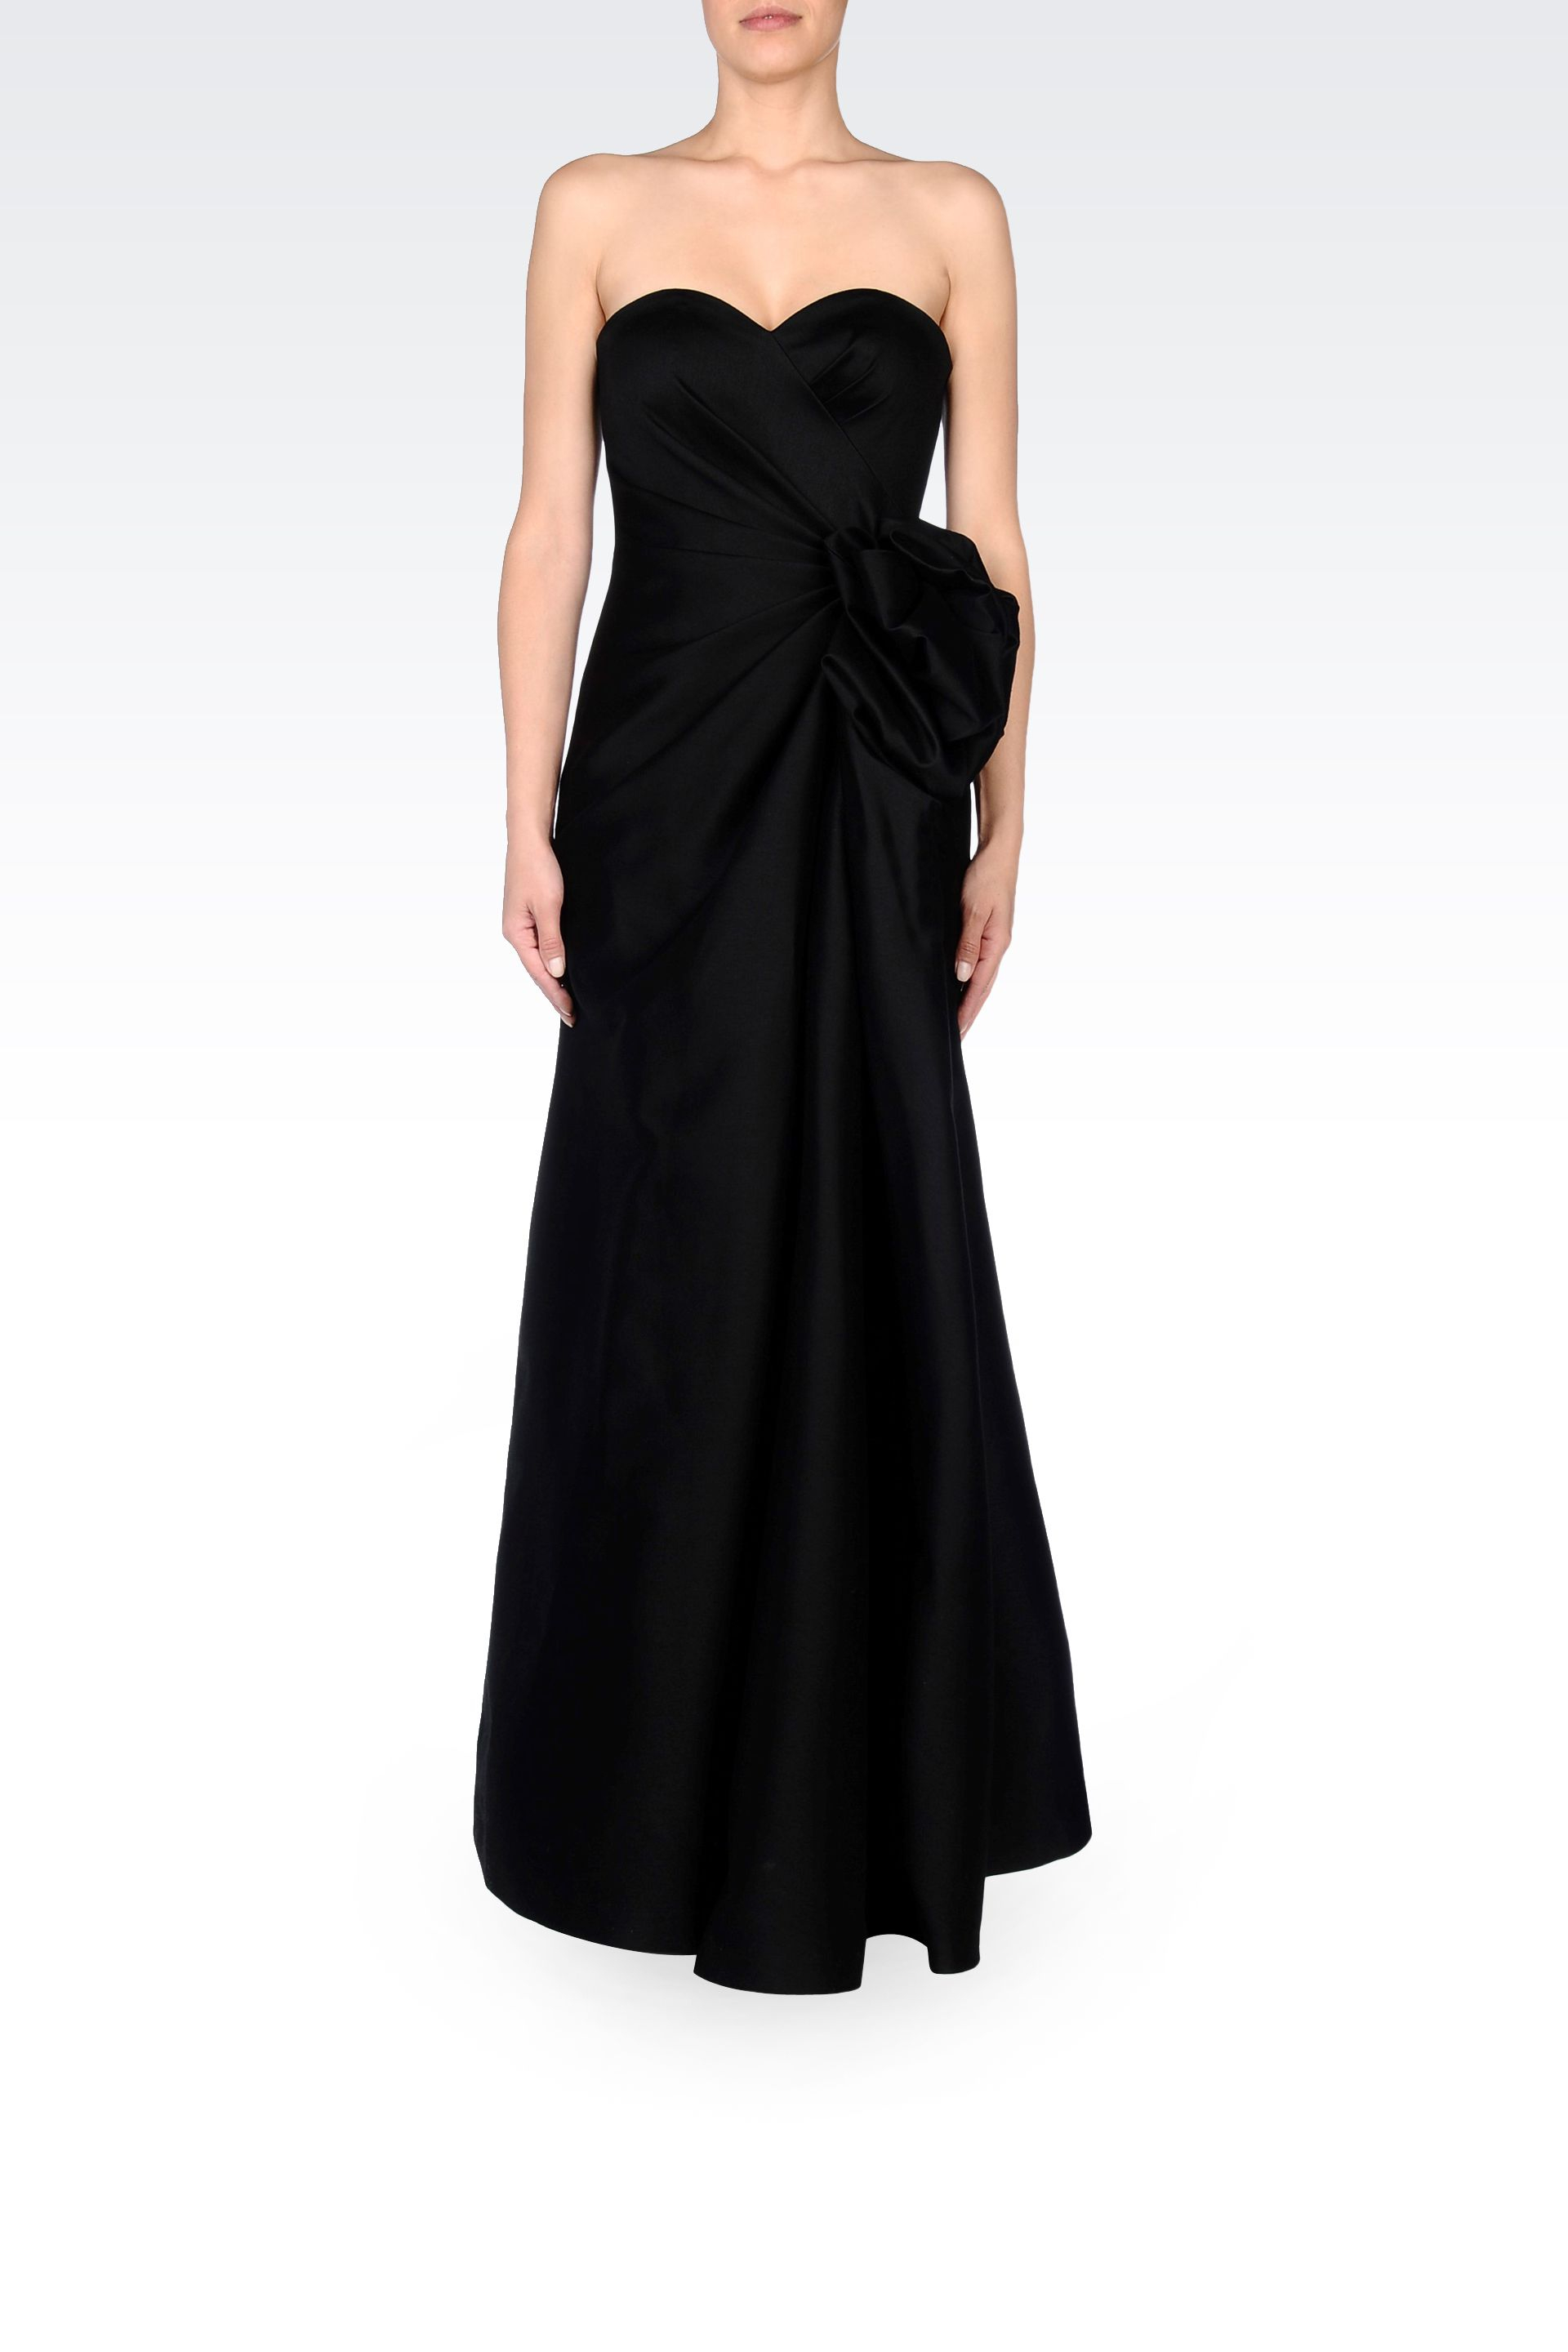 Armani Long Evening Dress With Bow in Black | Lyst